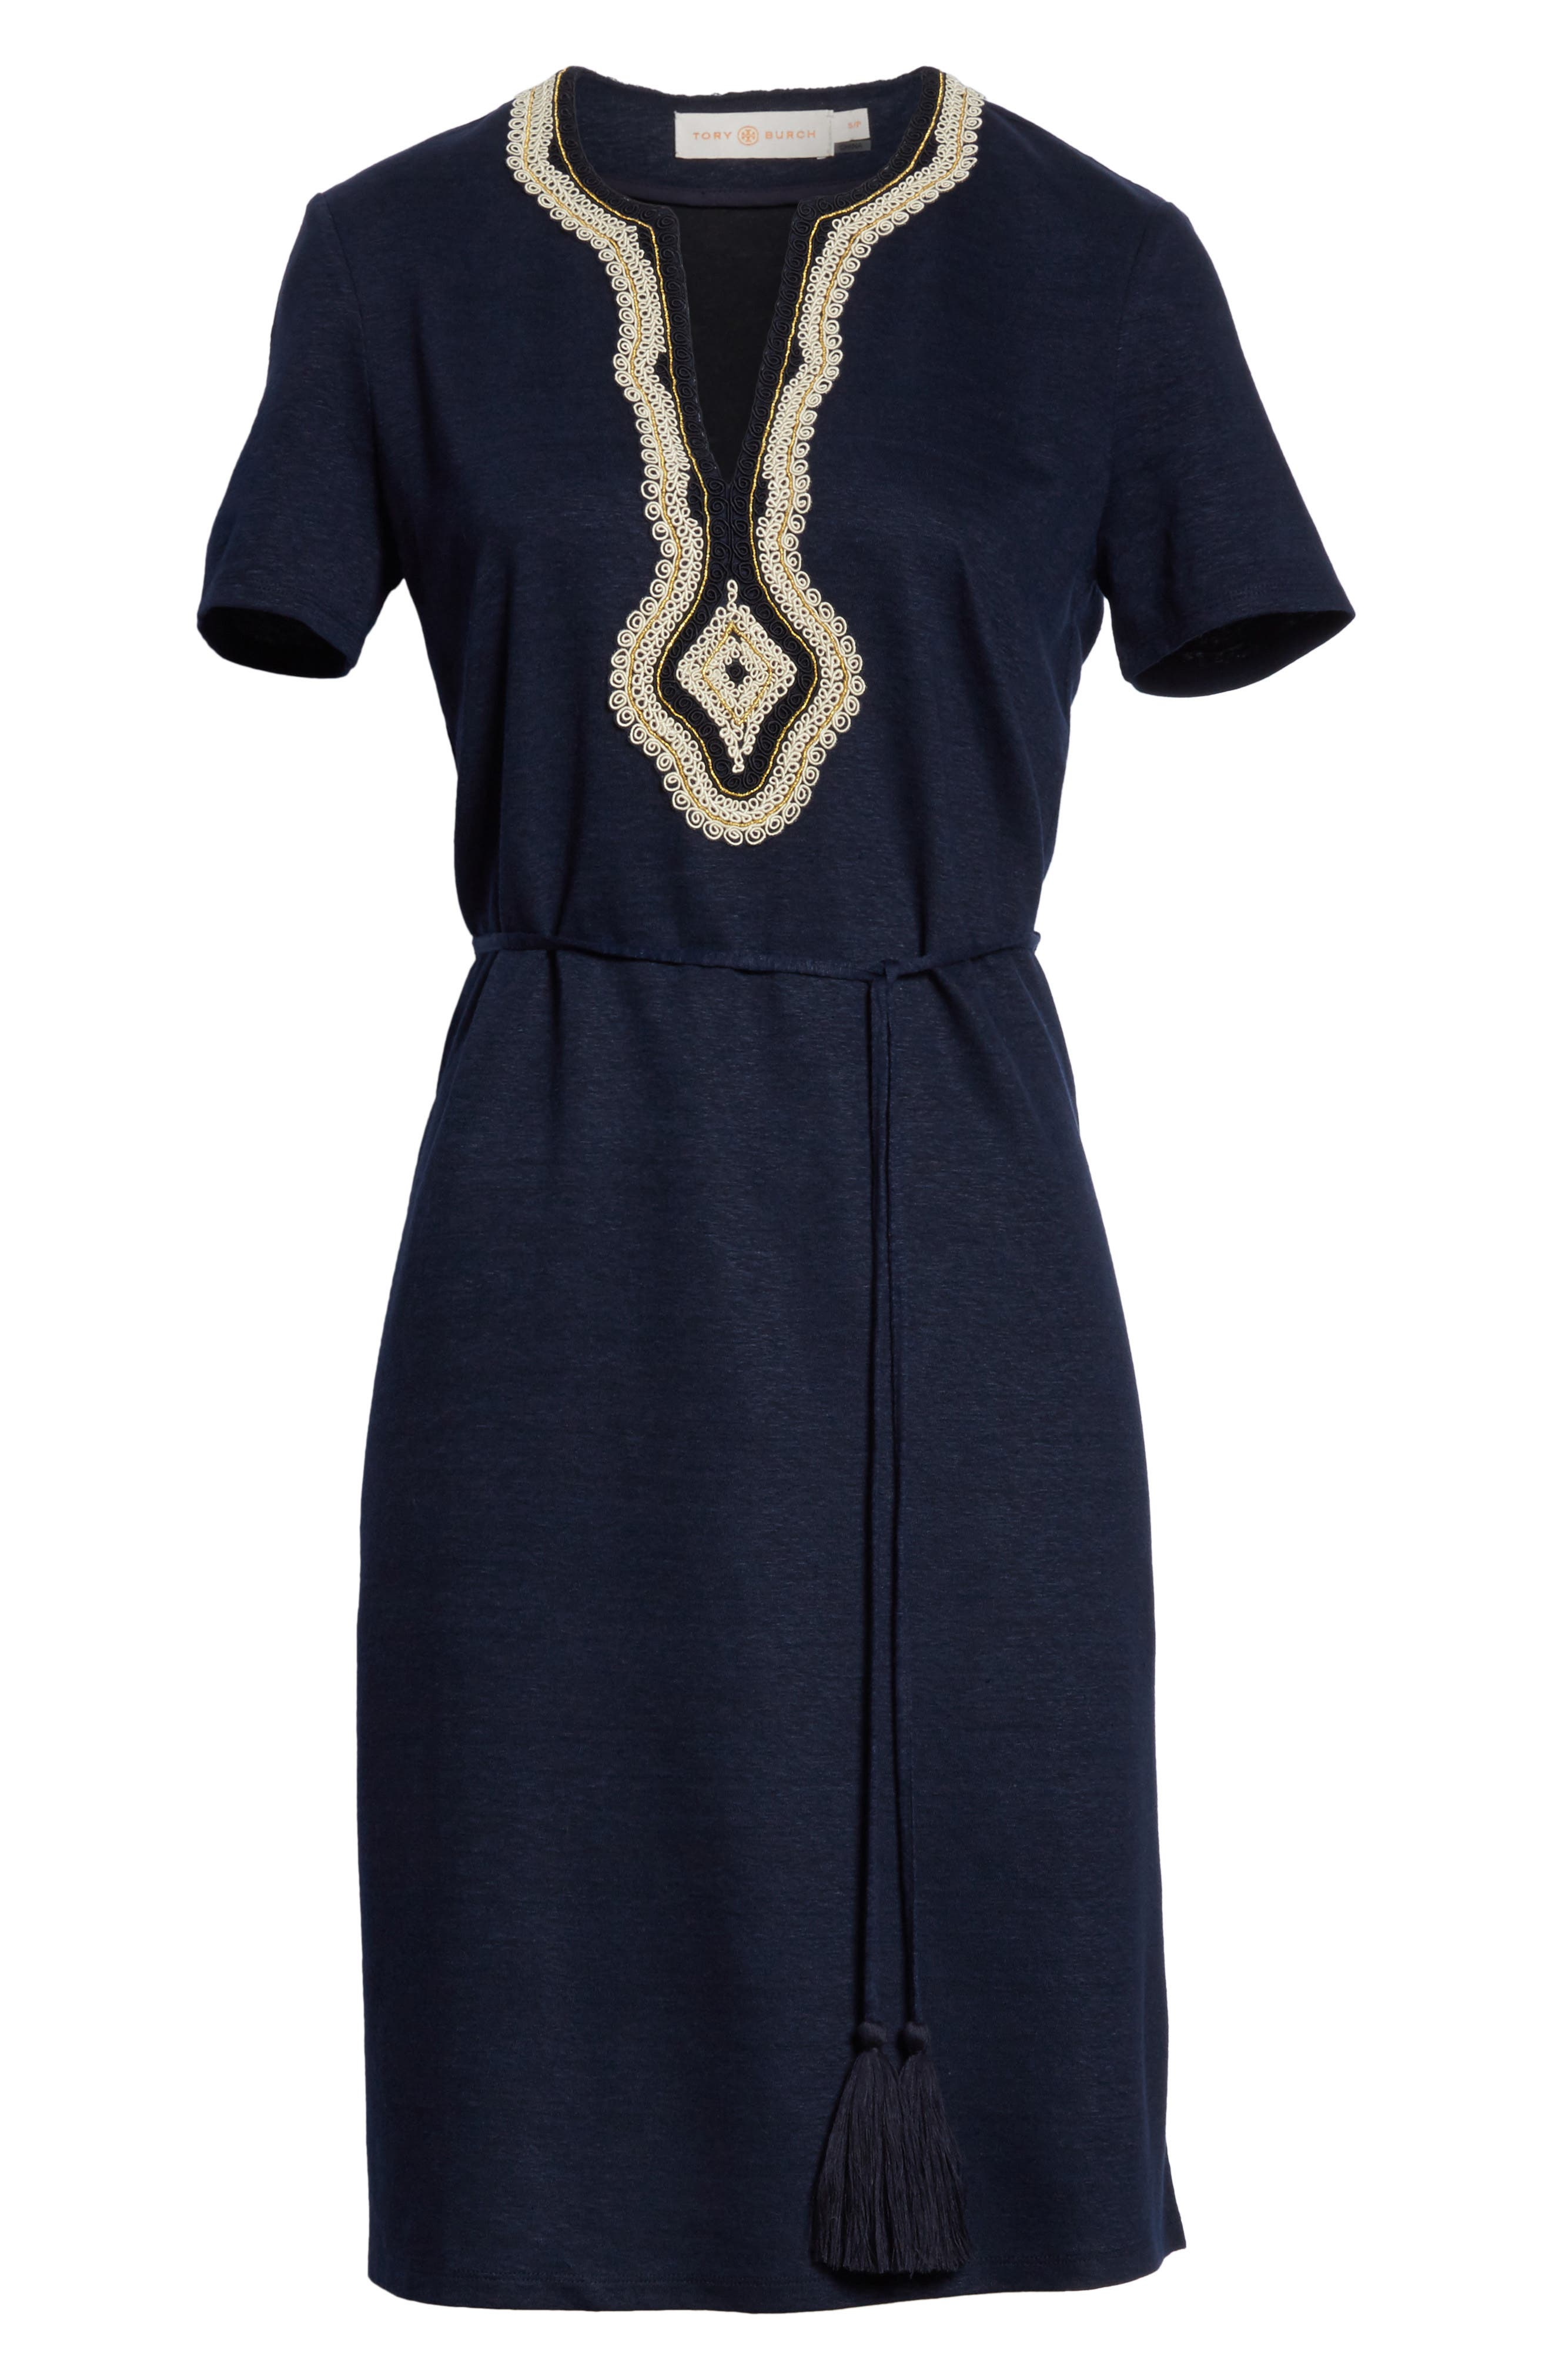 Embroidered Knit Dress,                             Alternate thumbnail 6, color,                             405